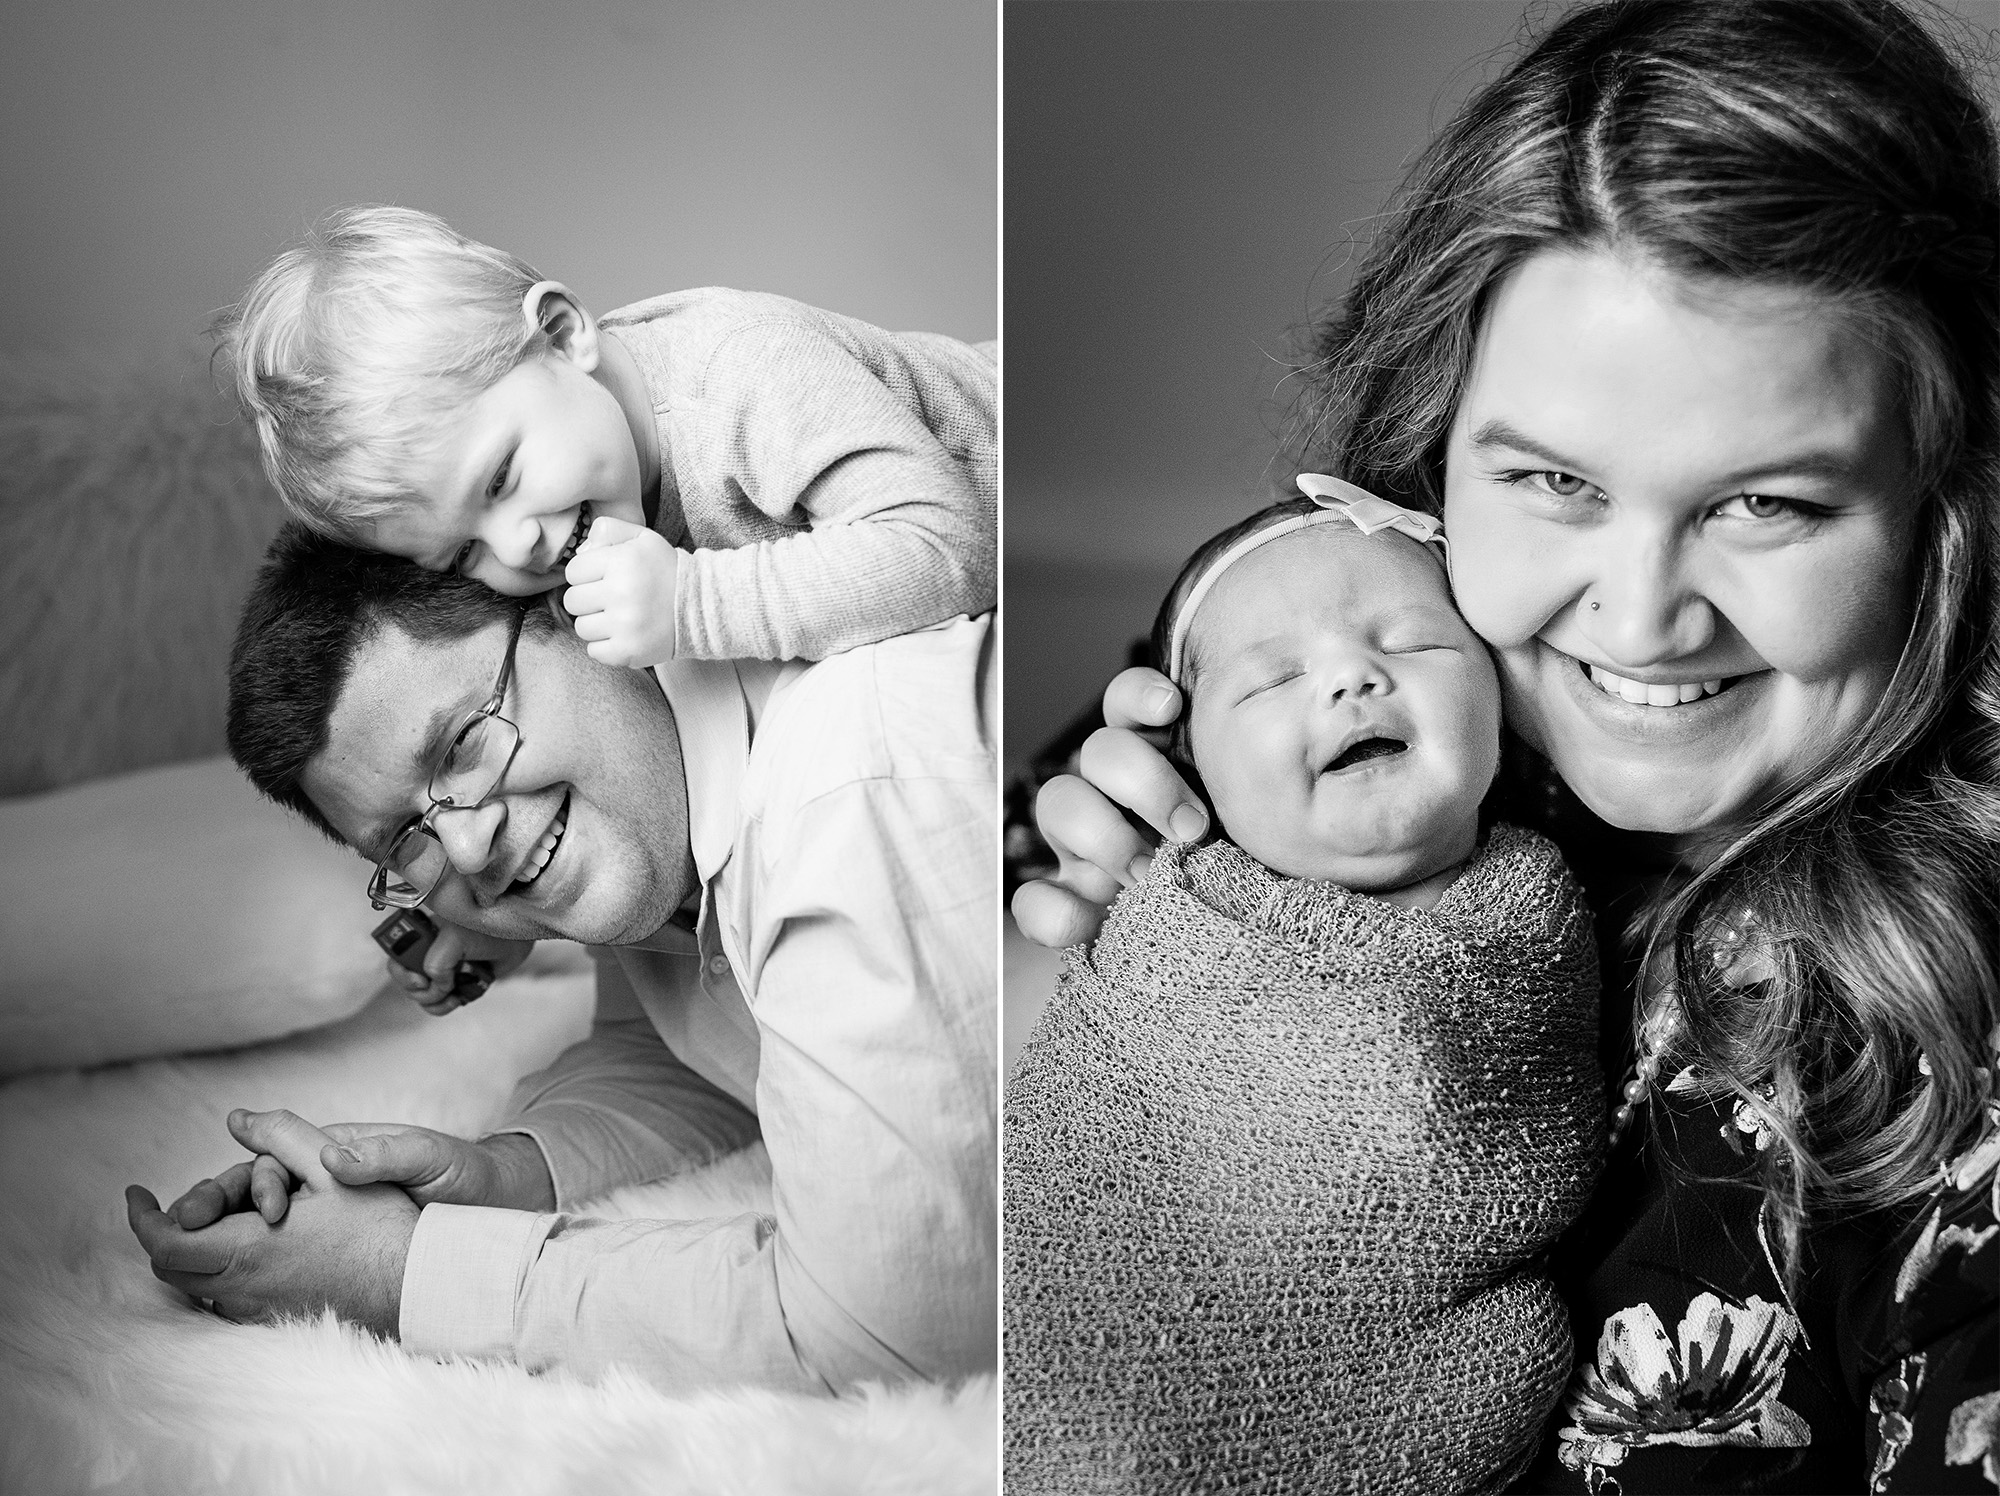 Seriously_Sabrina_Photography_Lexington_Kentucky_Studio_Family_Newborn_Portraits_Wood_22.jpg